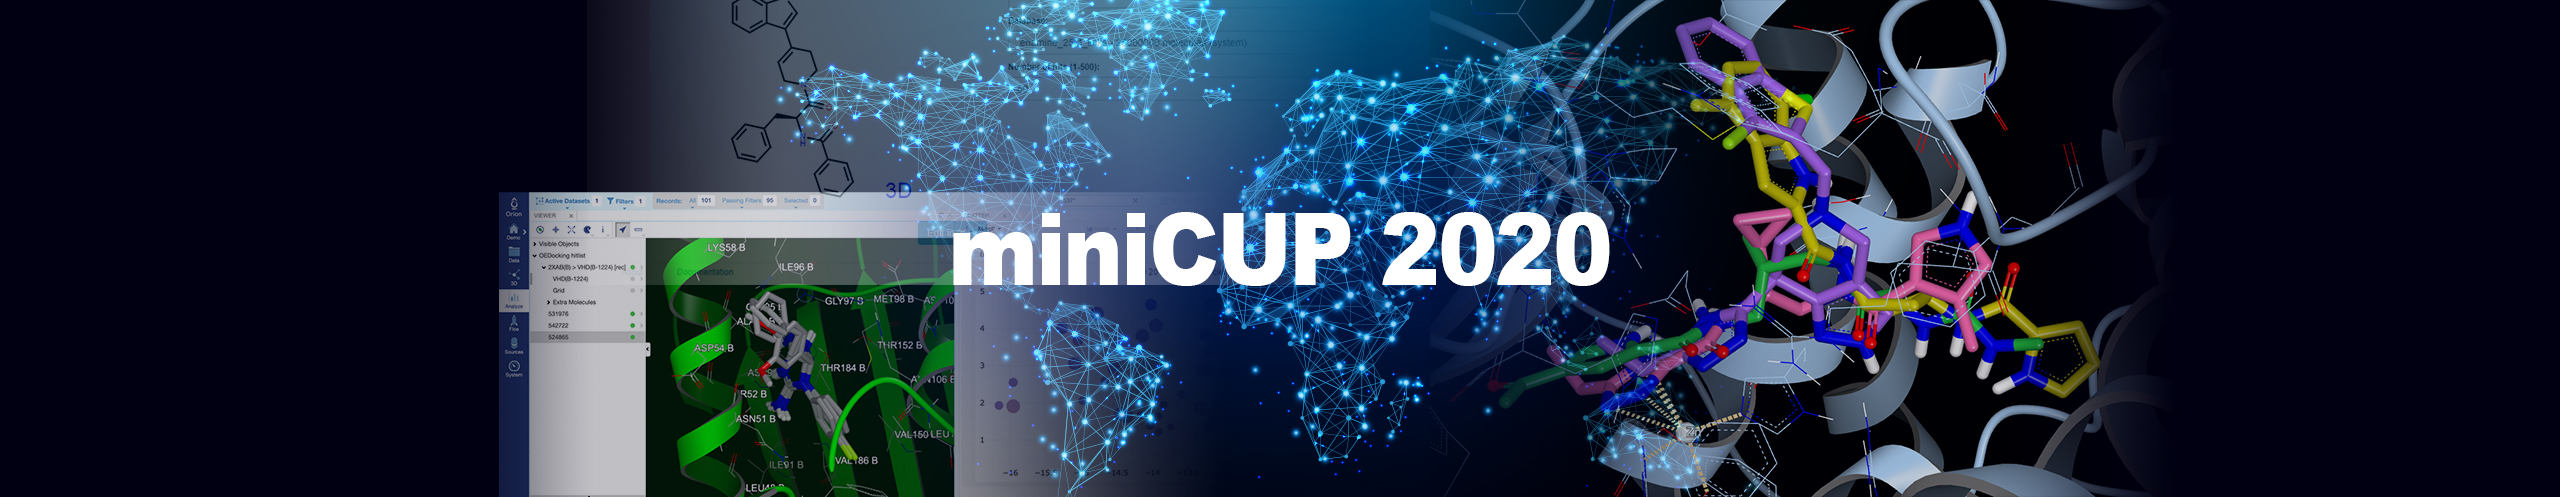 miniCUP - Europe/Middle East/Africa| Oct. 21, 2020